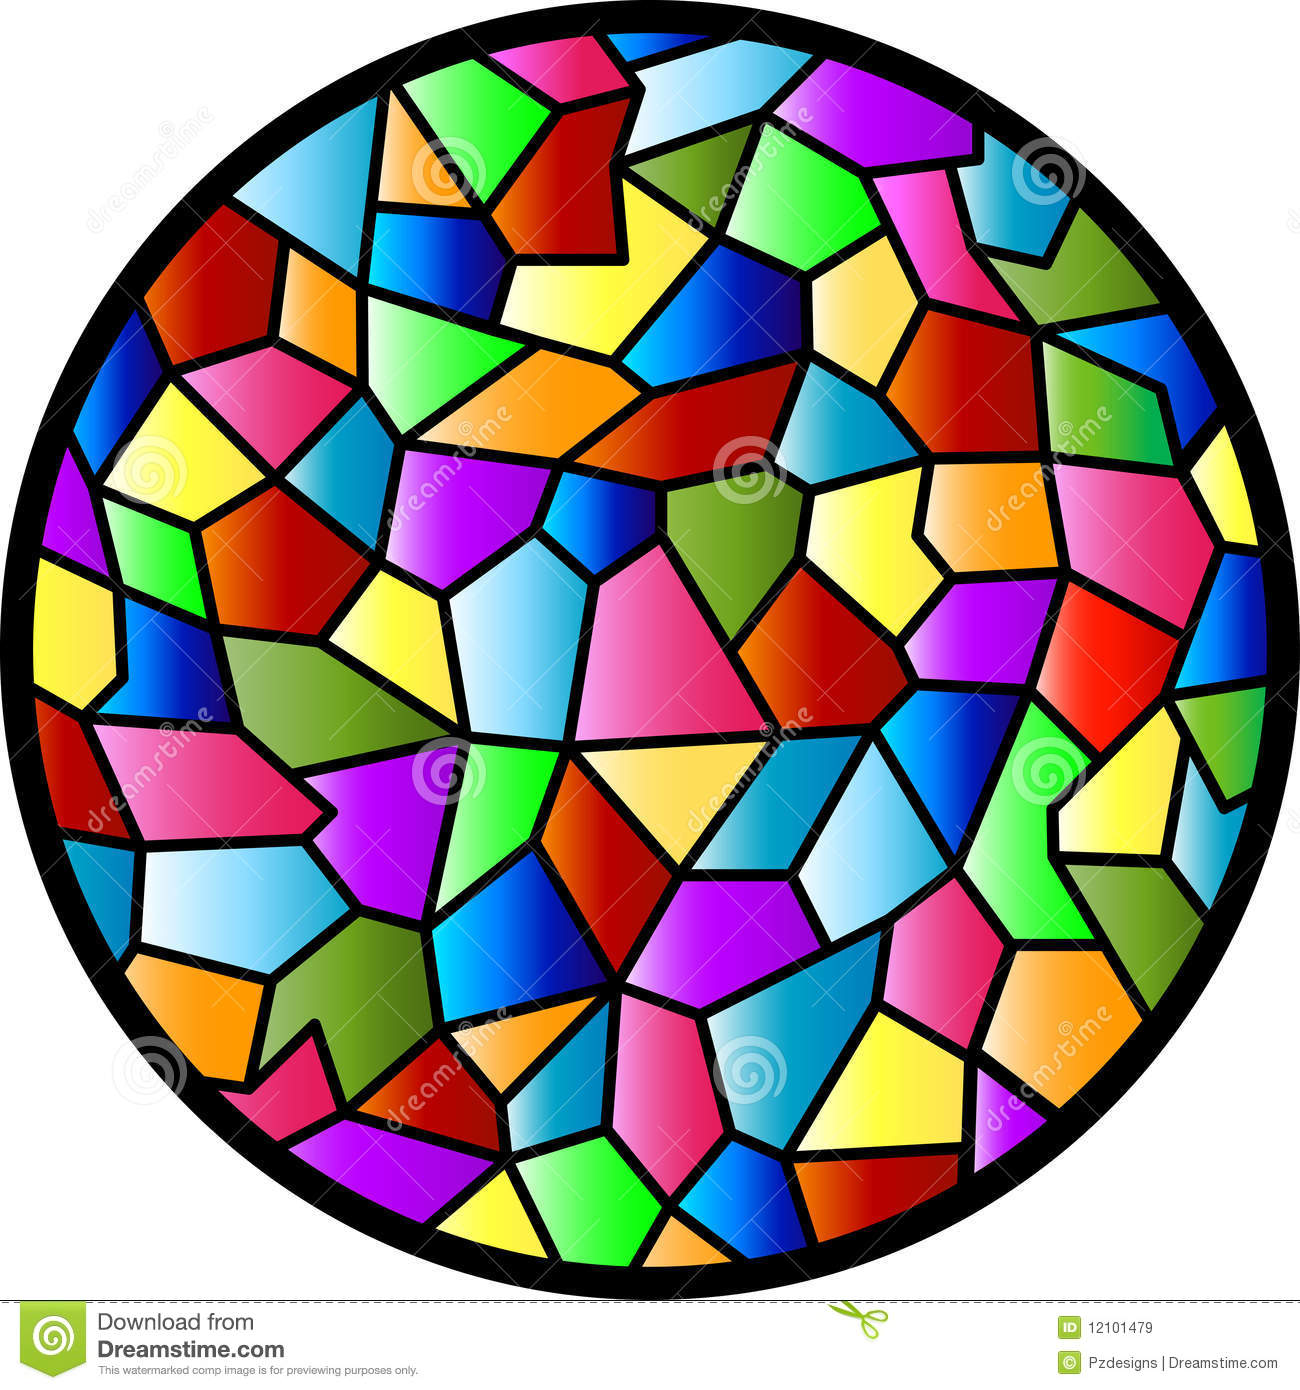 Stained Glass Clip Art : Stained glass clipart panda free